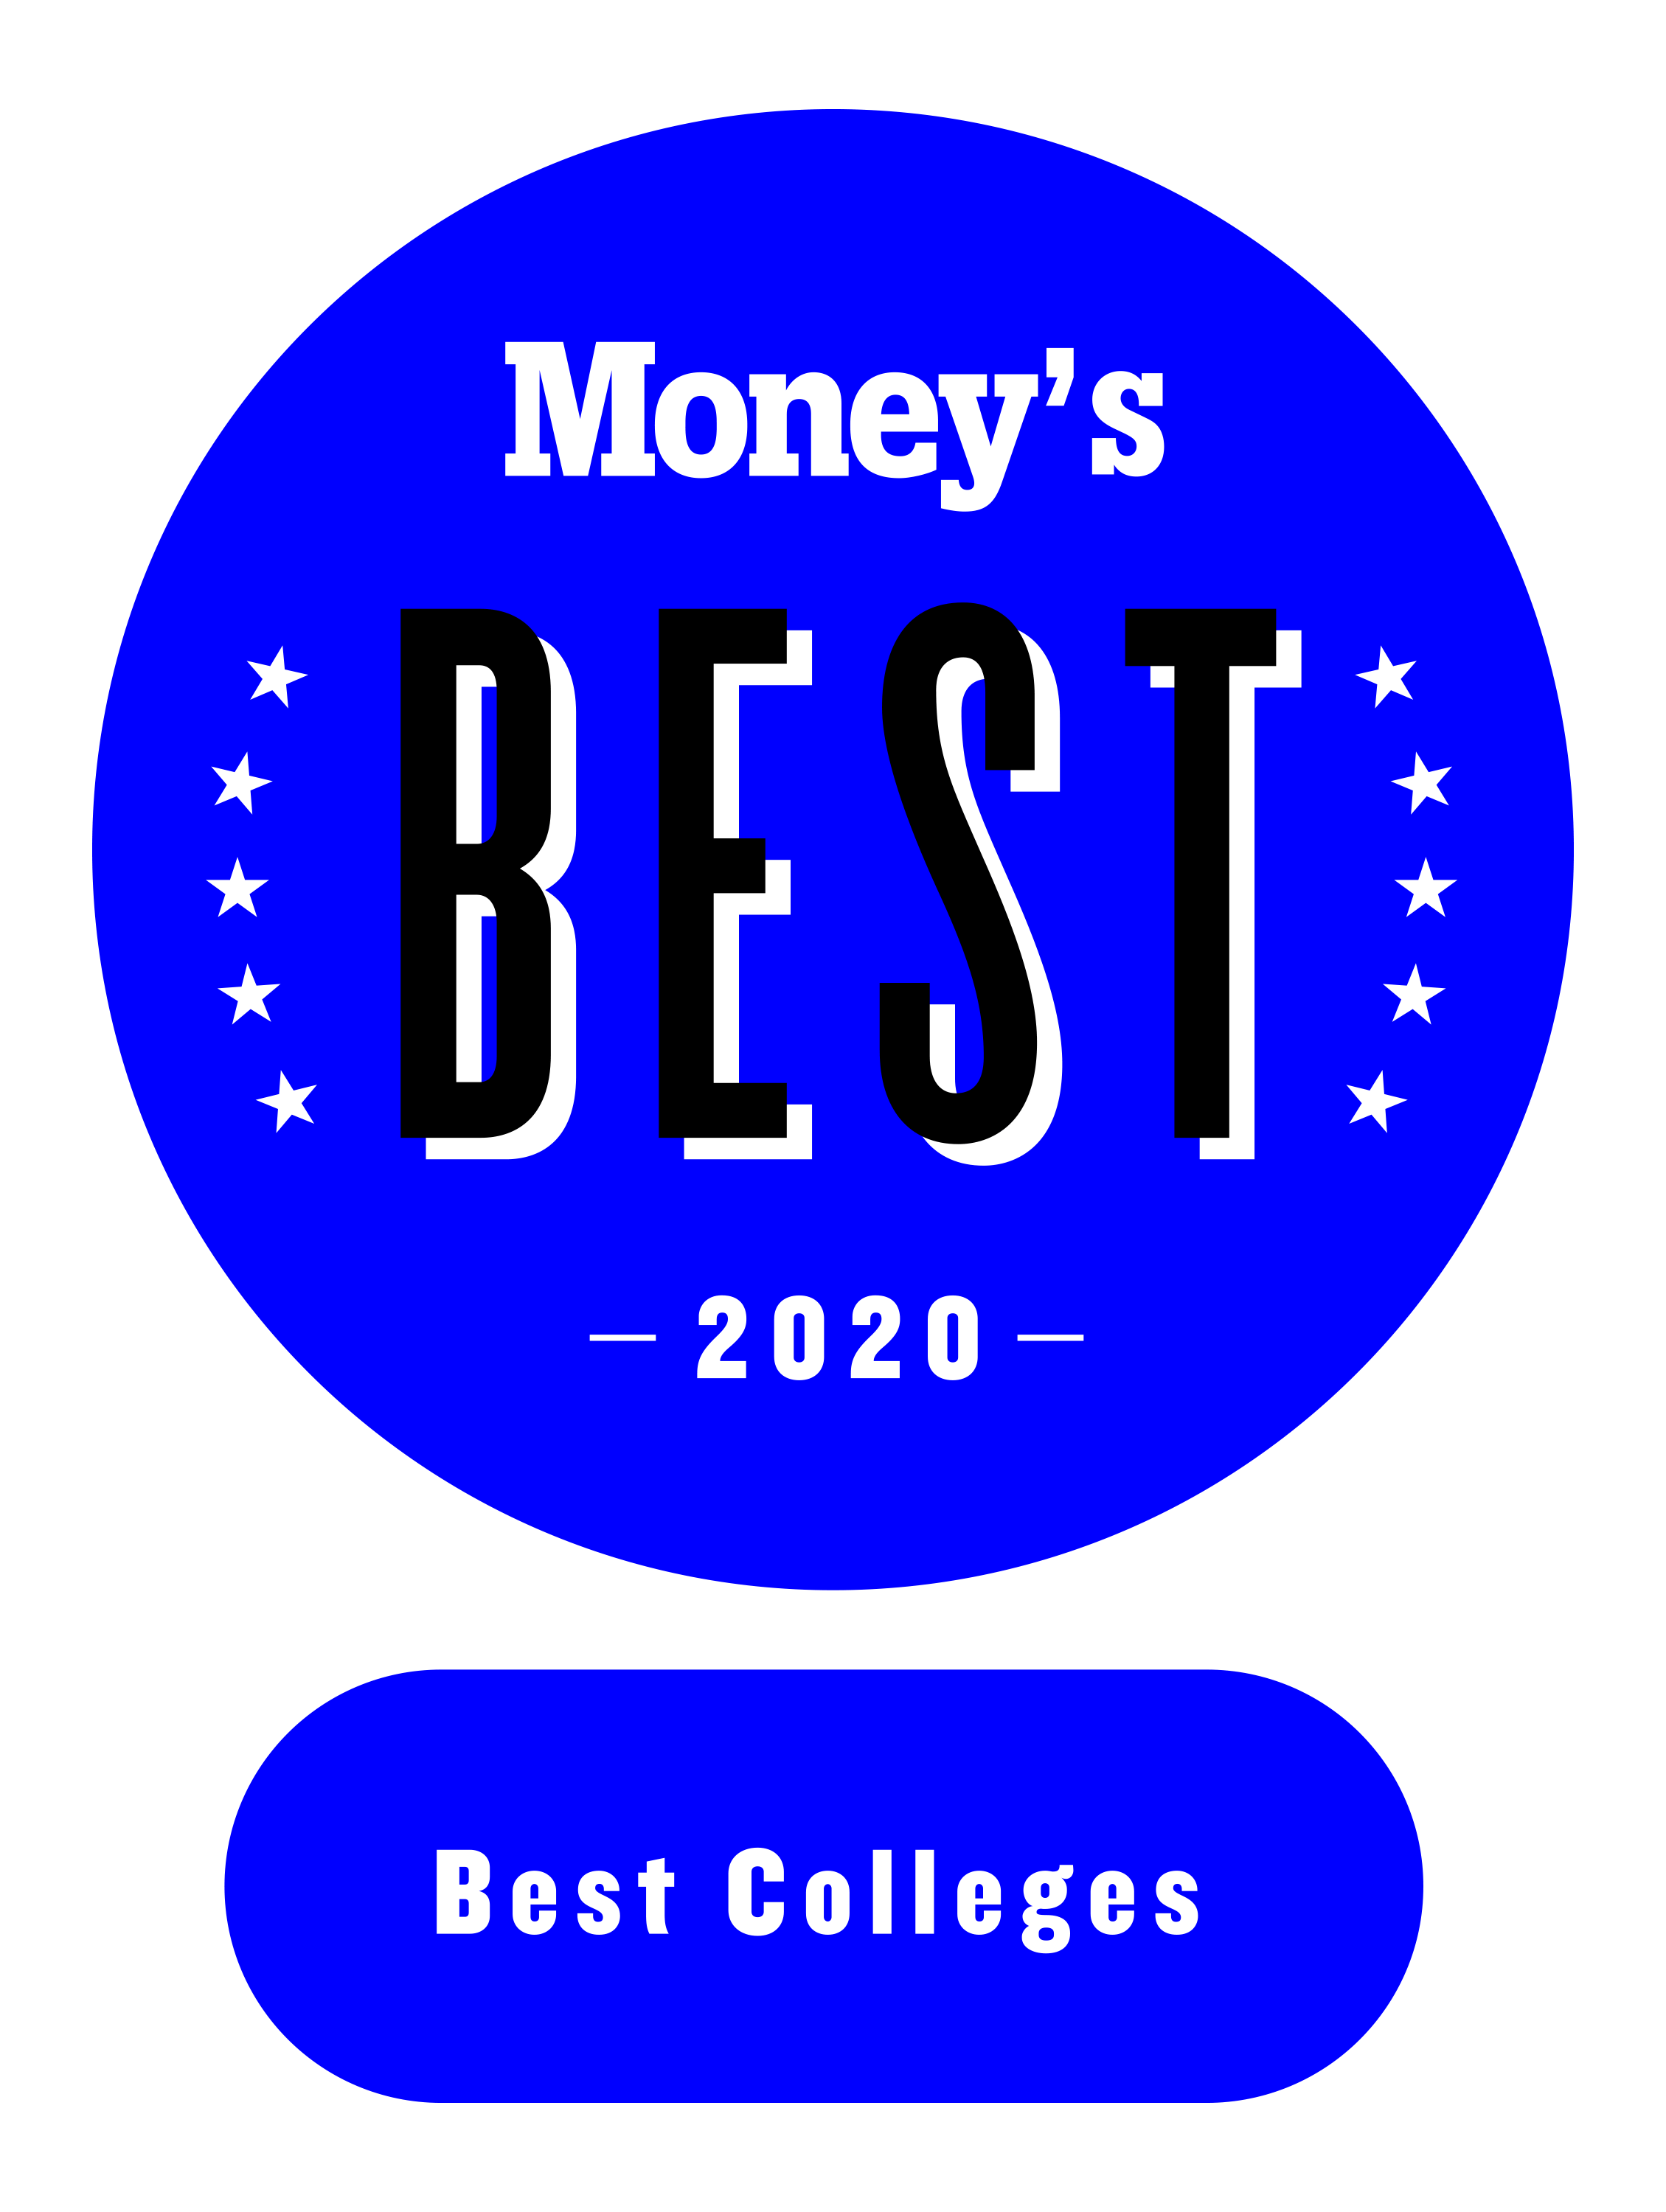 Money's Best Colleges logo